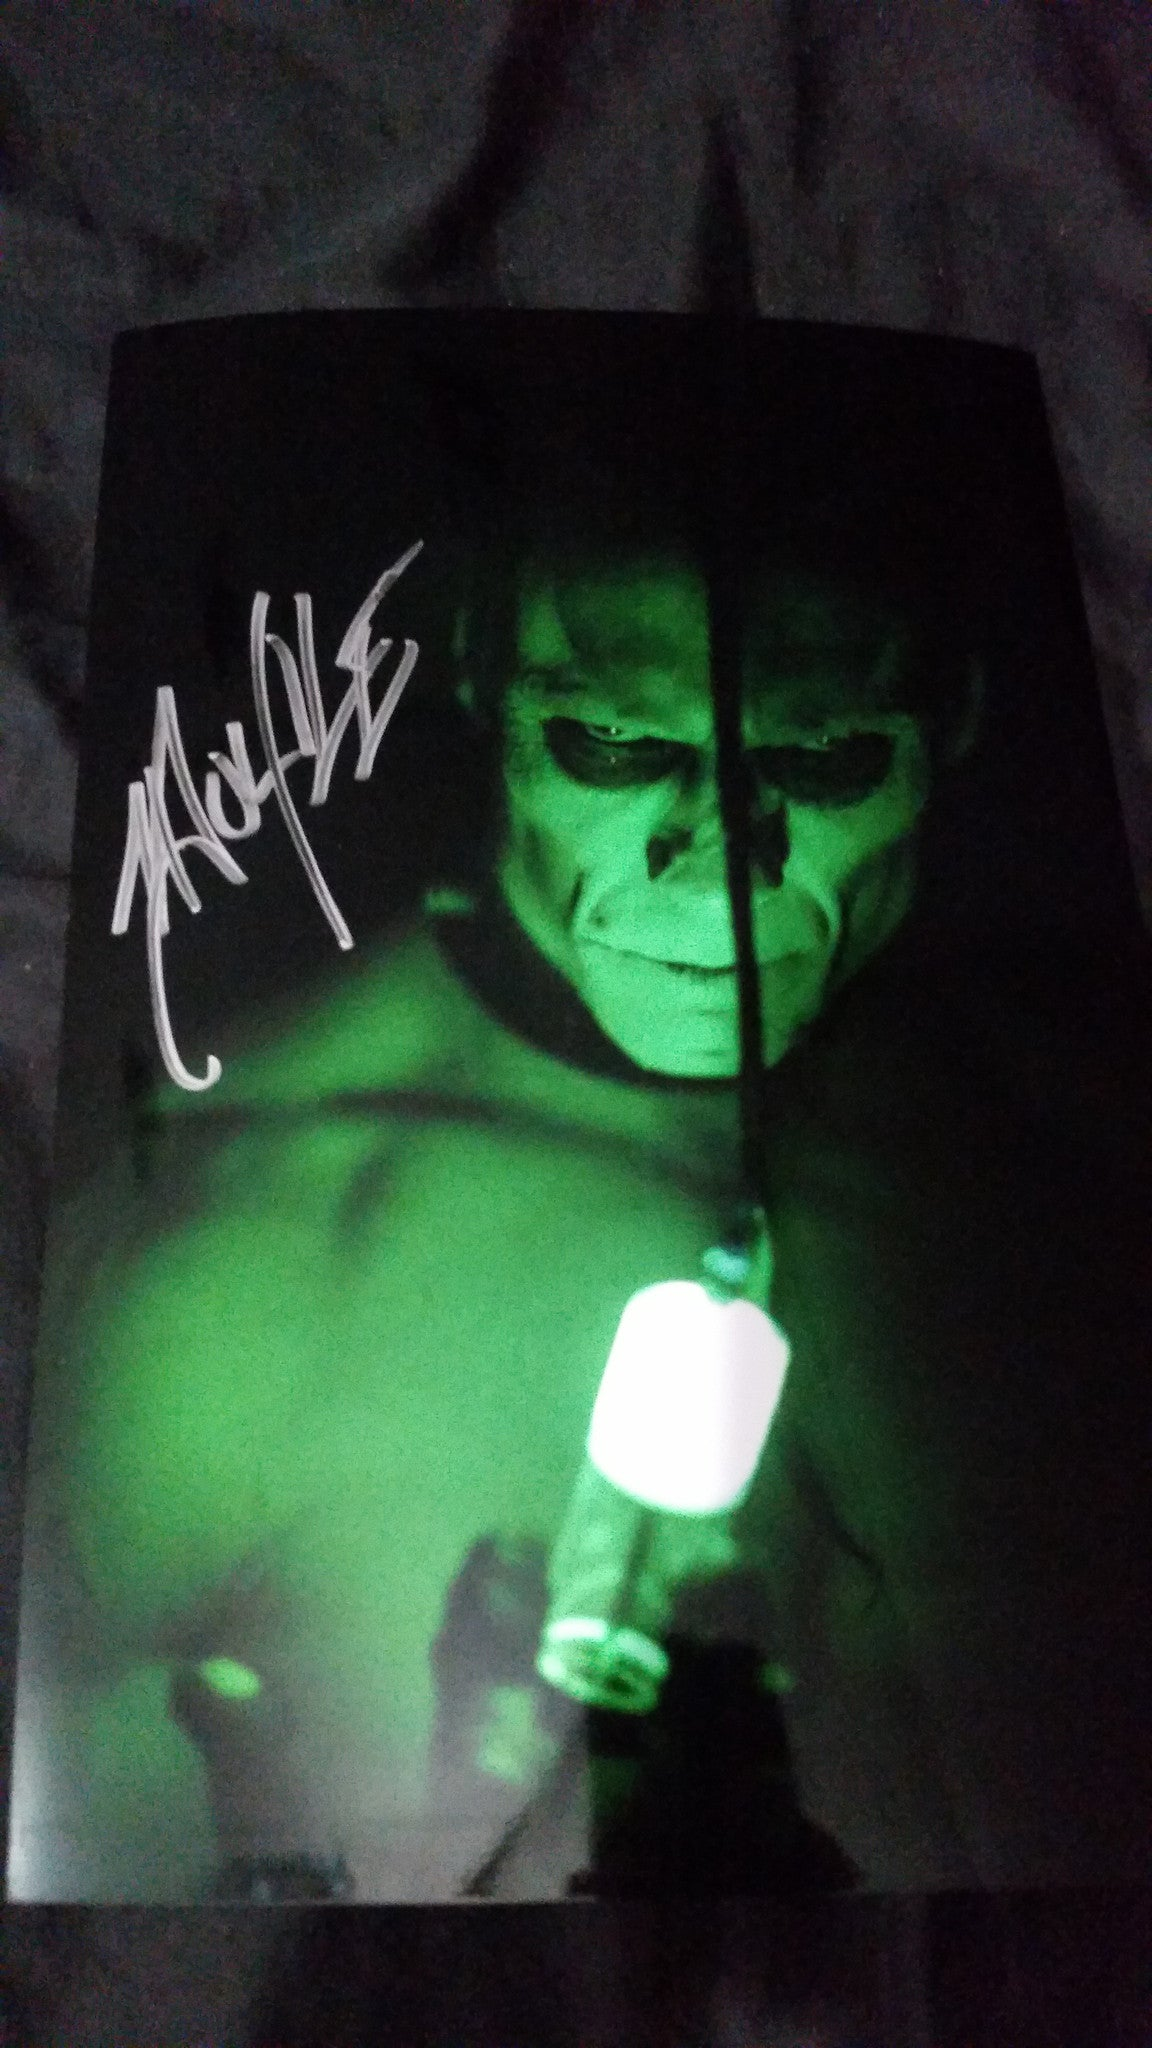 Doyle Wolfgang Von Frankenstein - Injection - Signed limited edition metallic 8x12